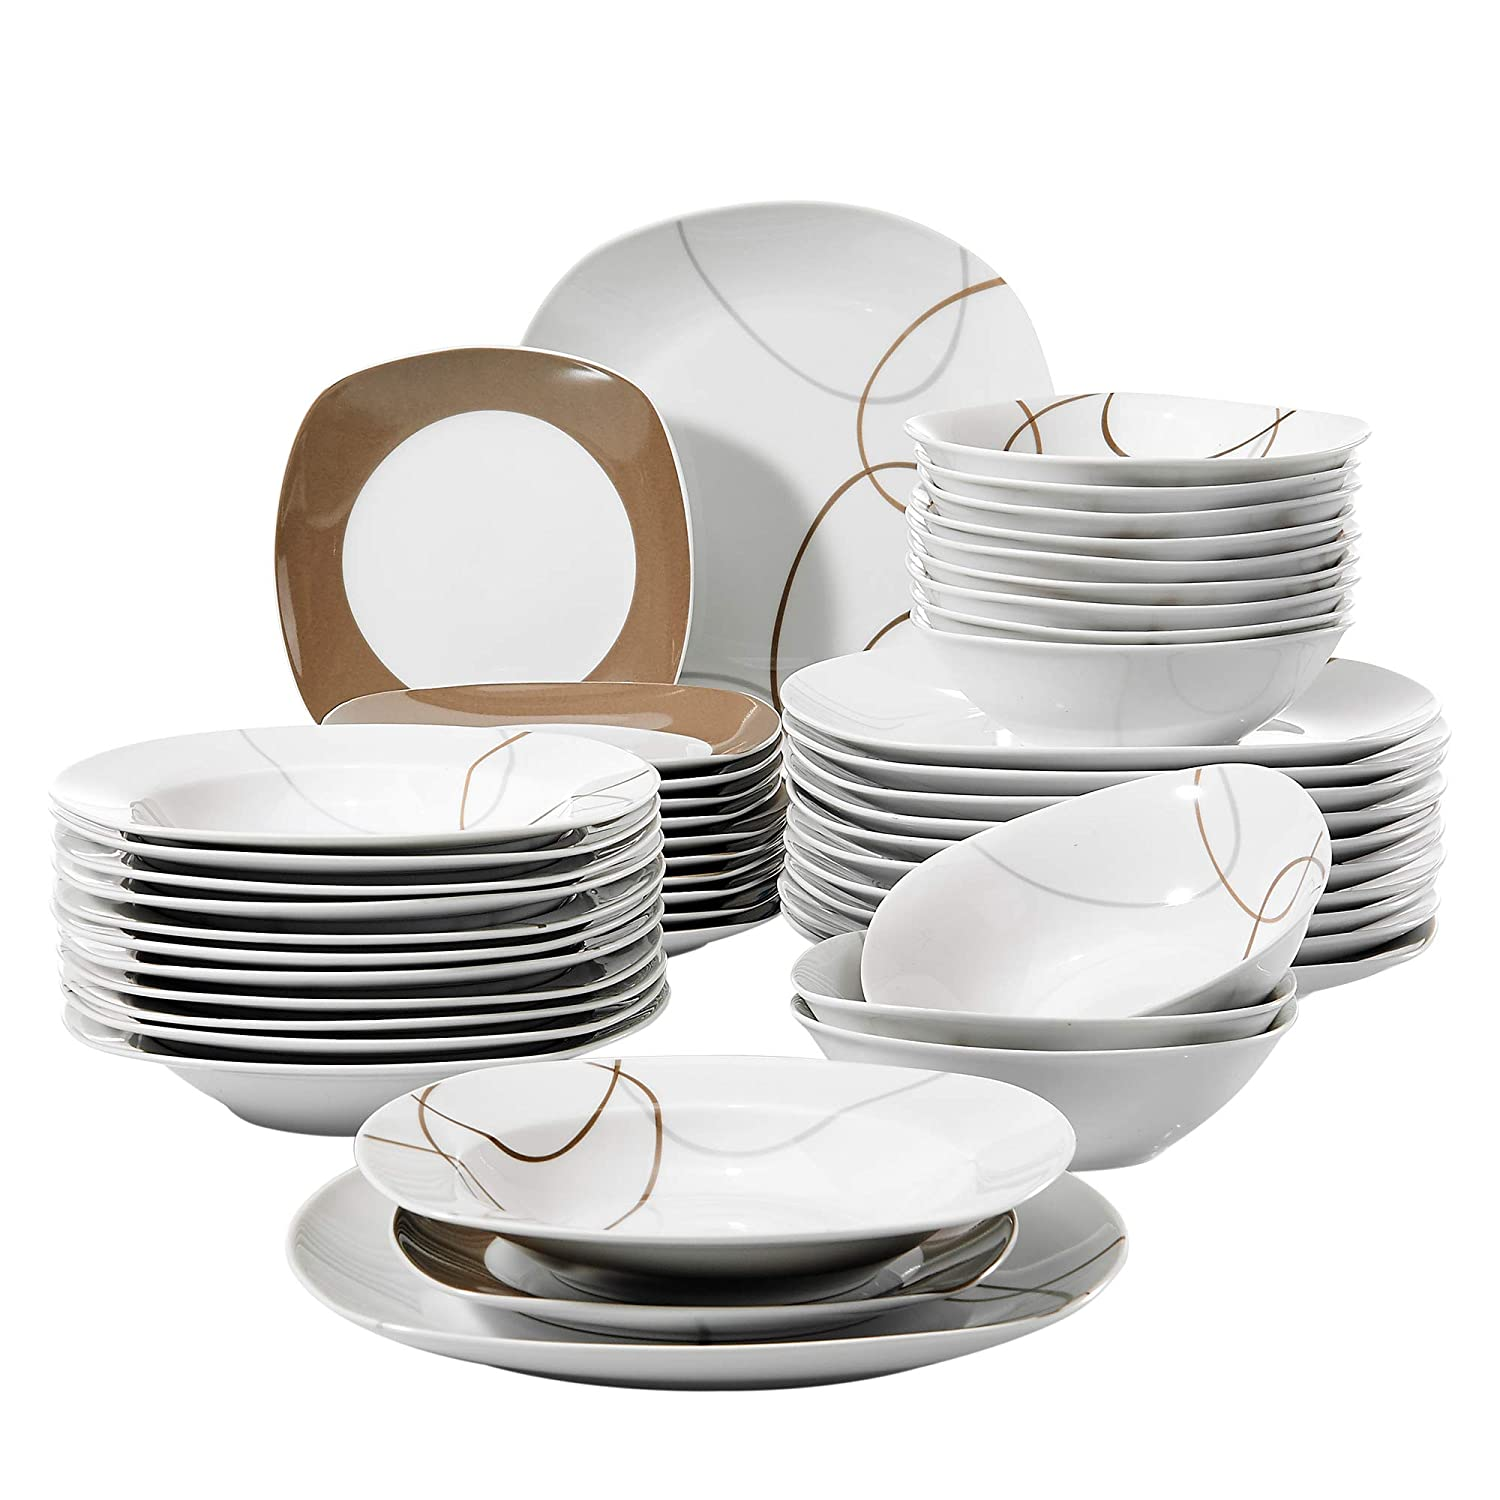 6 6 7.5 Dessert Plate 9.75 Dinner Plate 8.5 Soup Plate VEWEET Nikita 18-Piece Porcelain Ivory White Brown Lines Round Christmas Kitchen Dinner Sets of 6